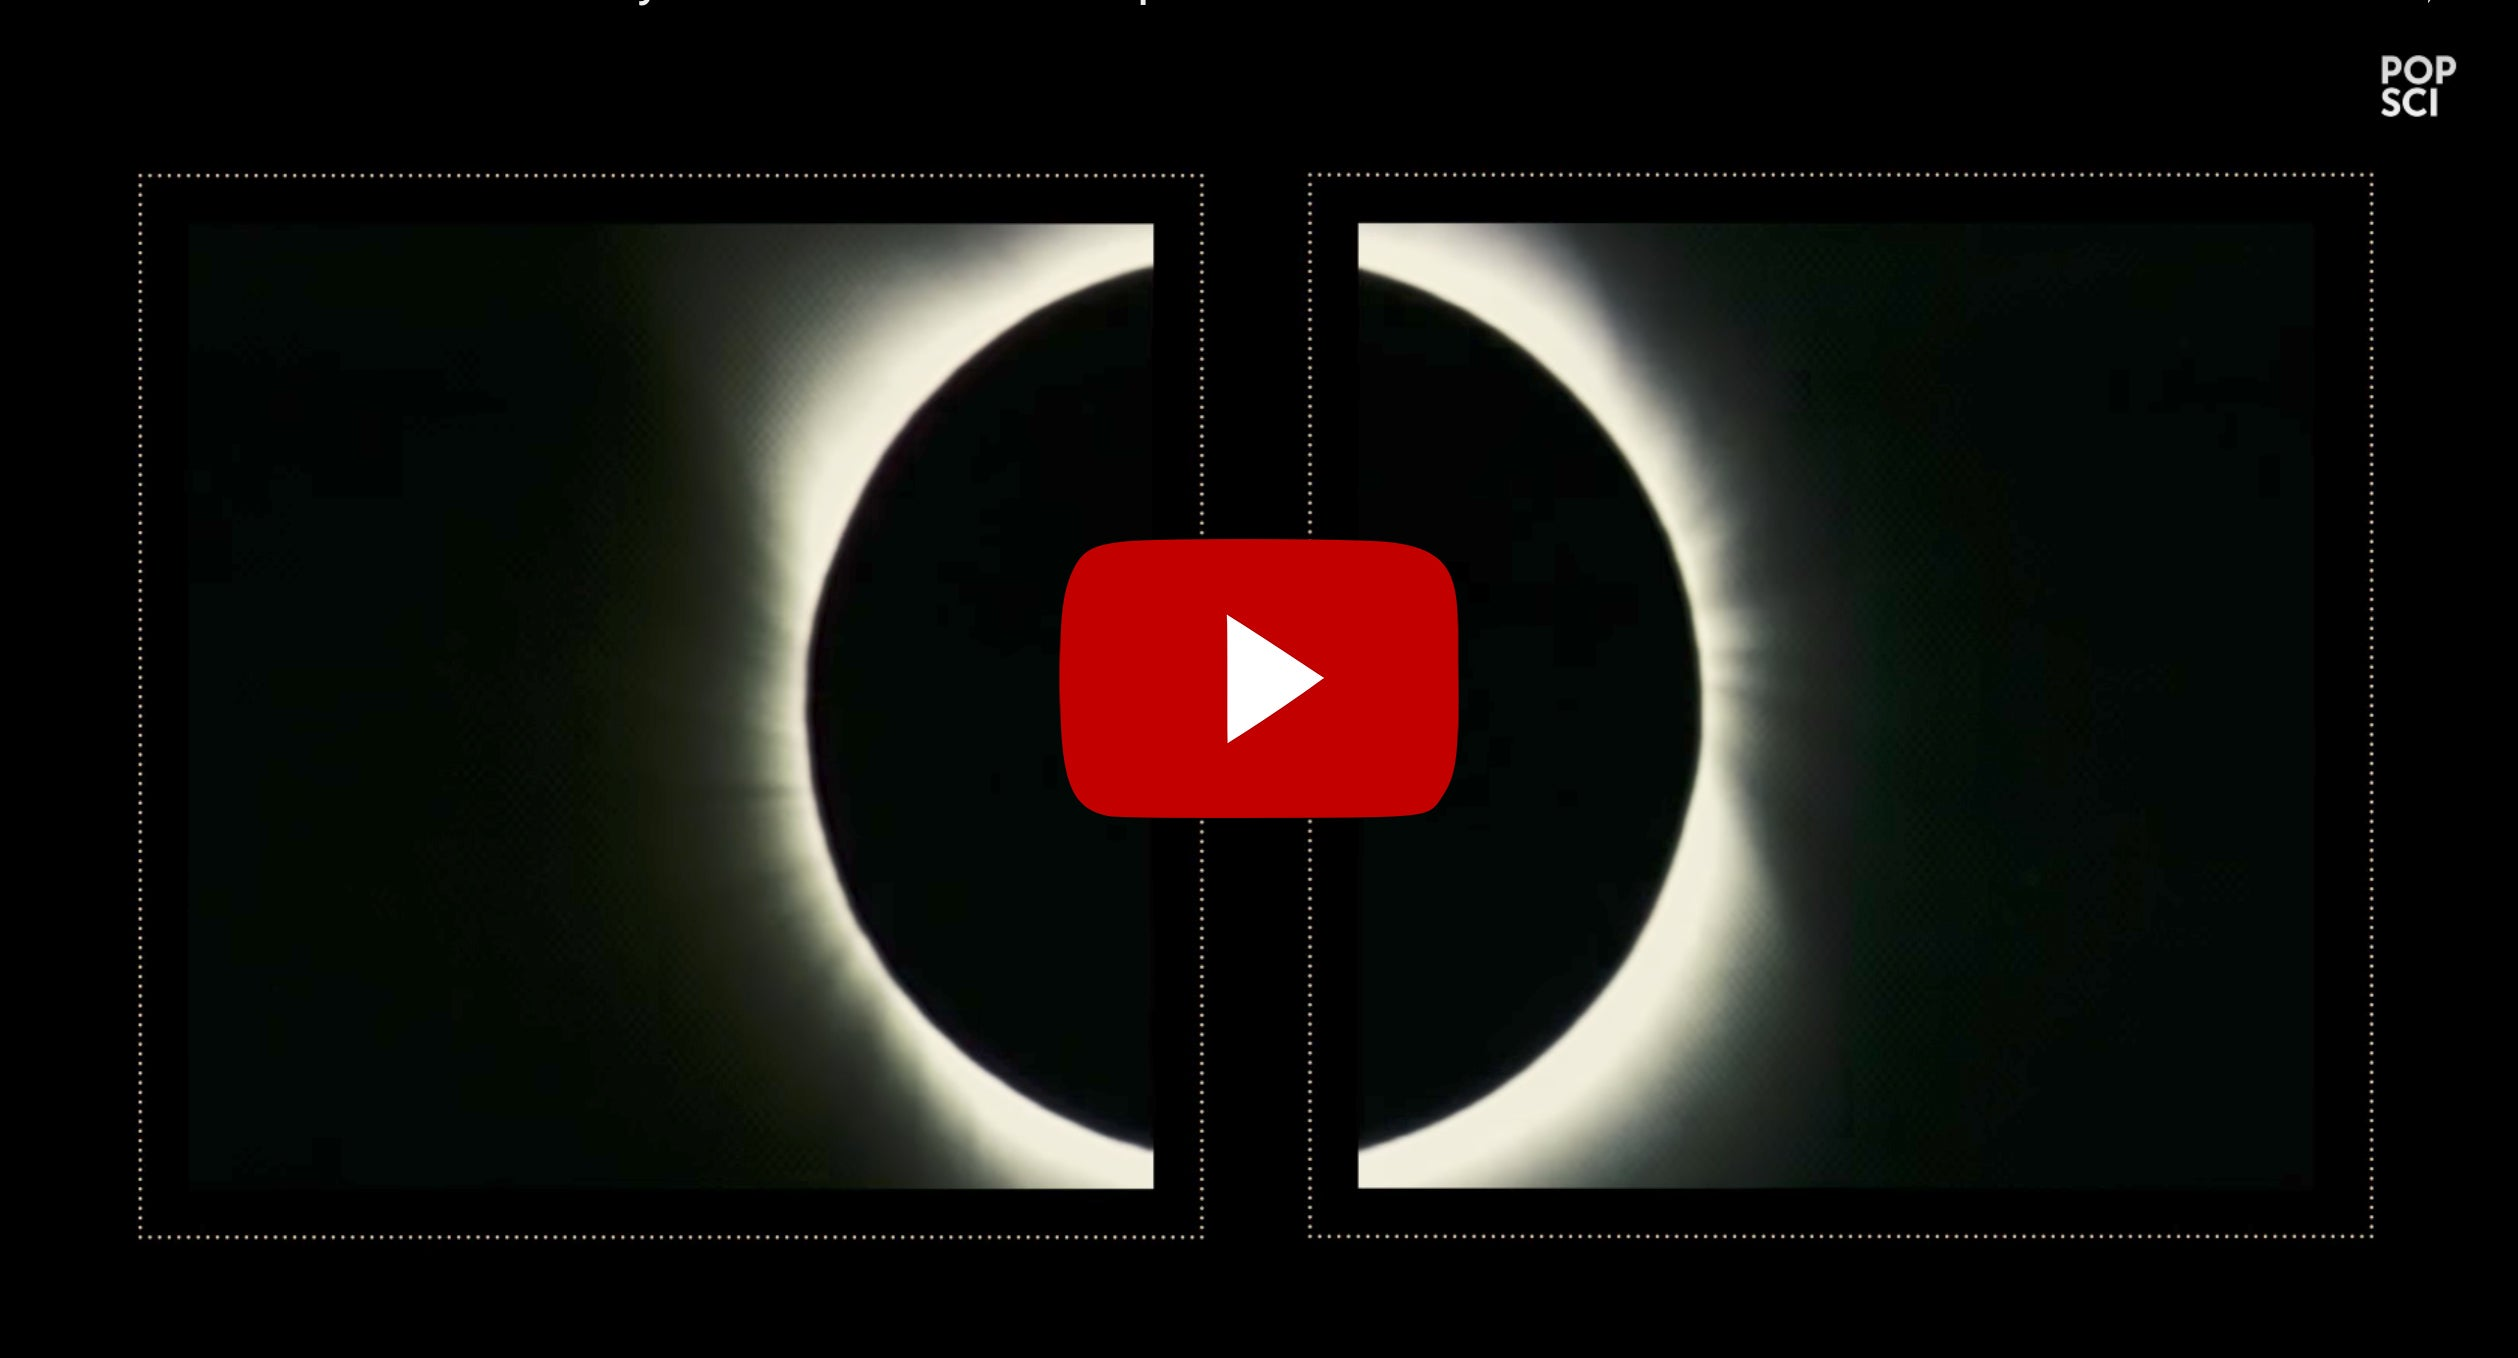 WATCH: The coincidental geometry of a total solar eclipse